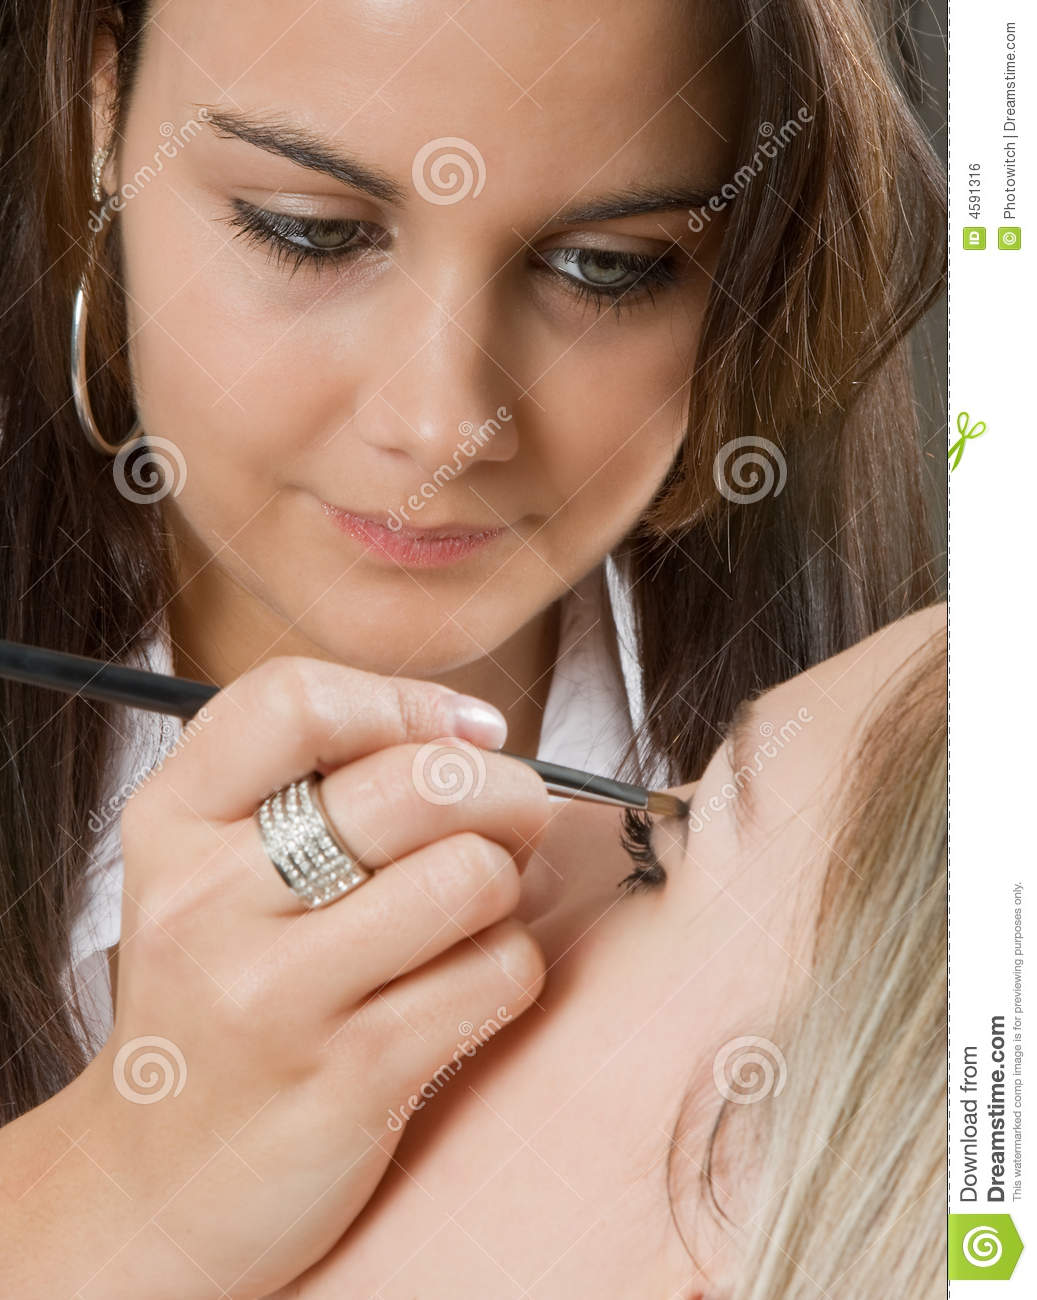 Professional Make Up Artist: Professional Make-up Royalty Free Stock Image